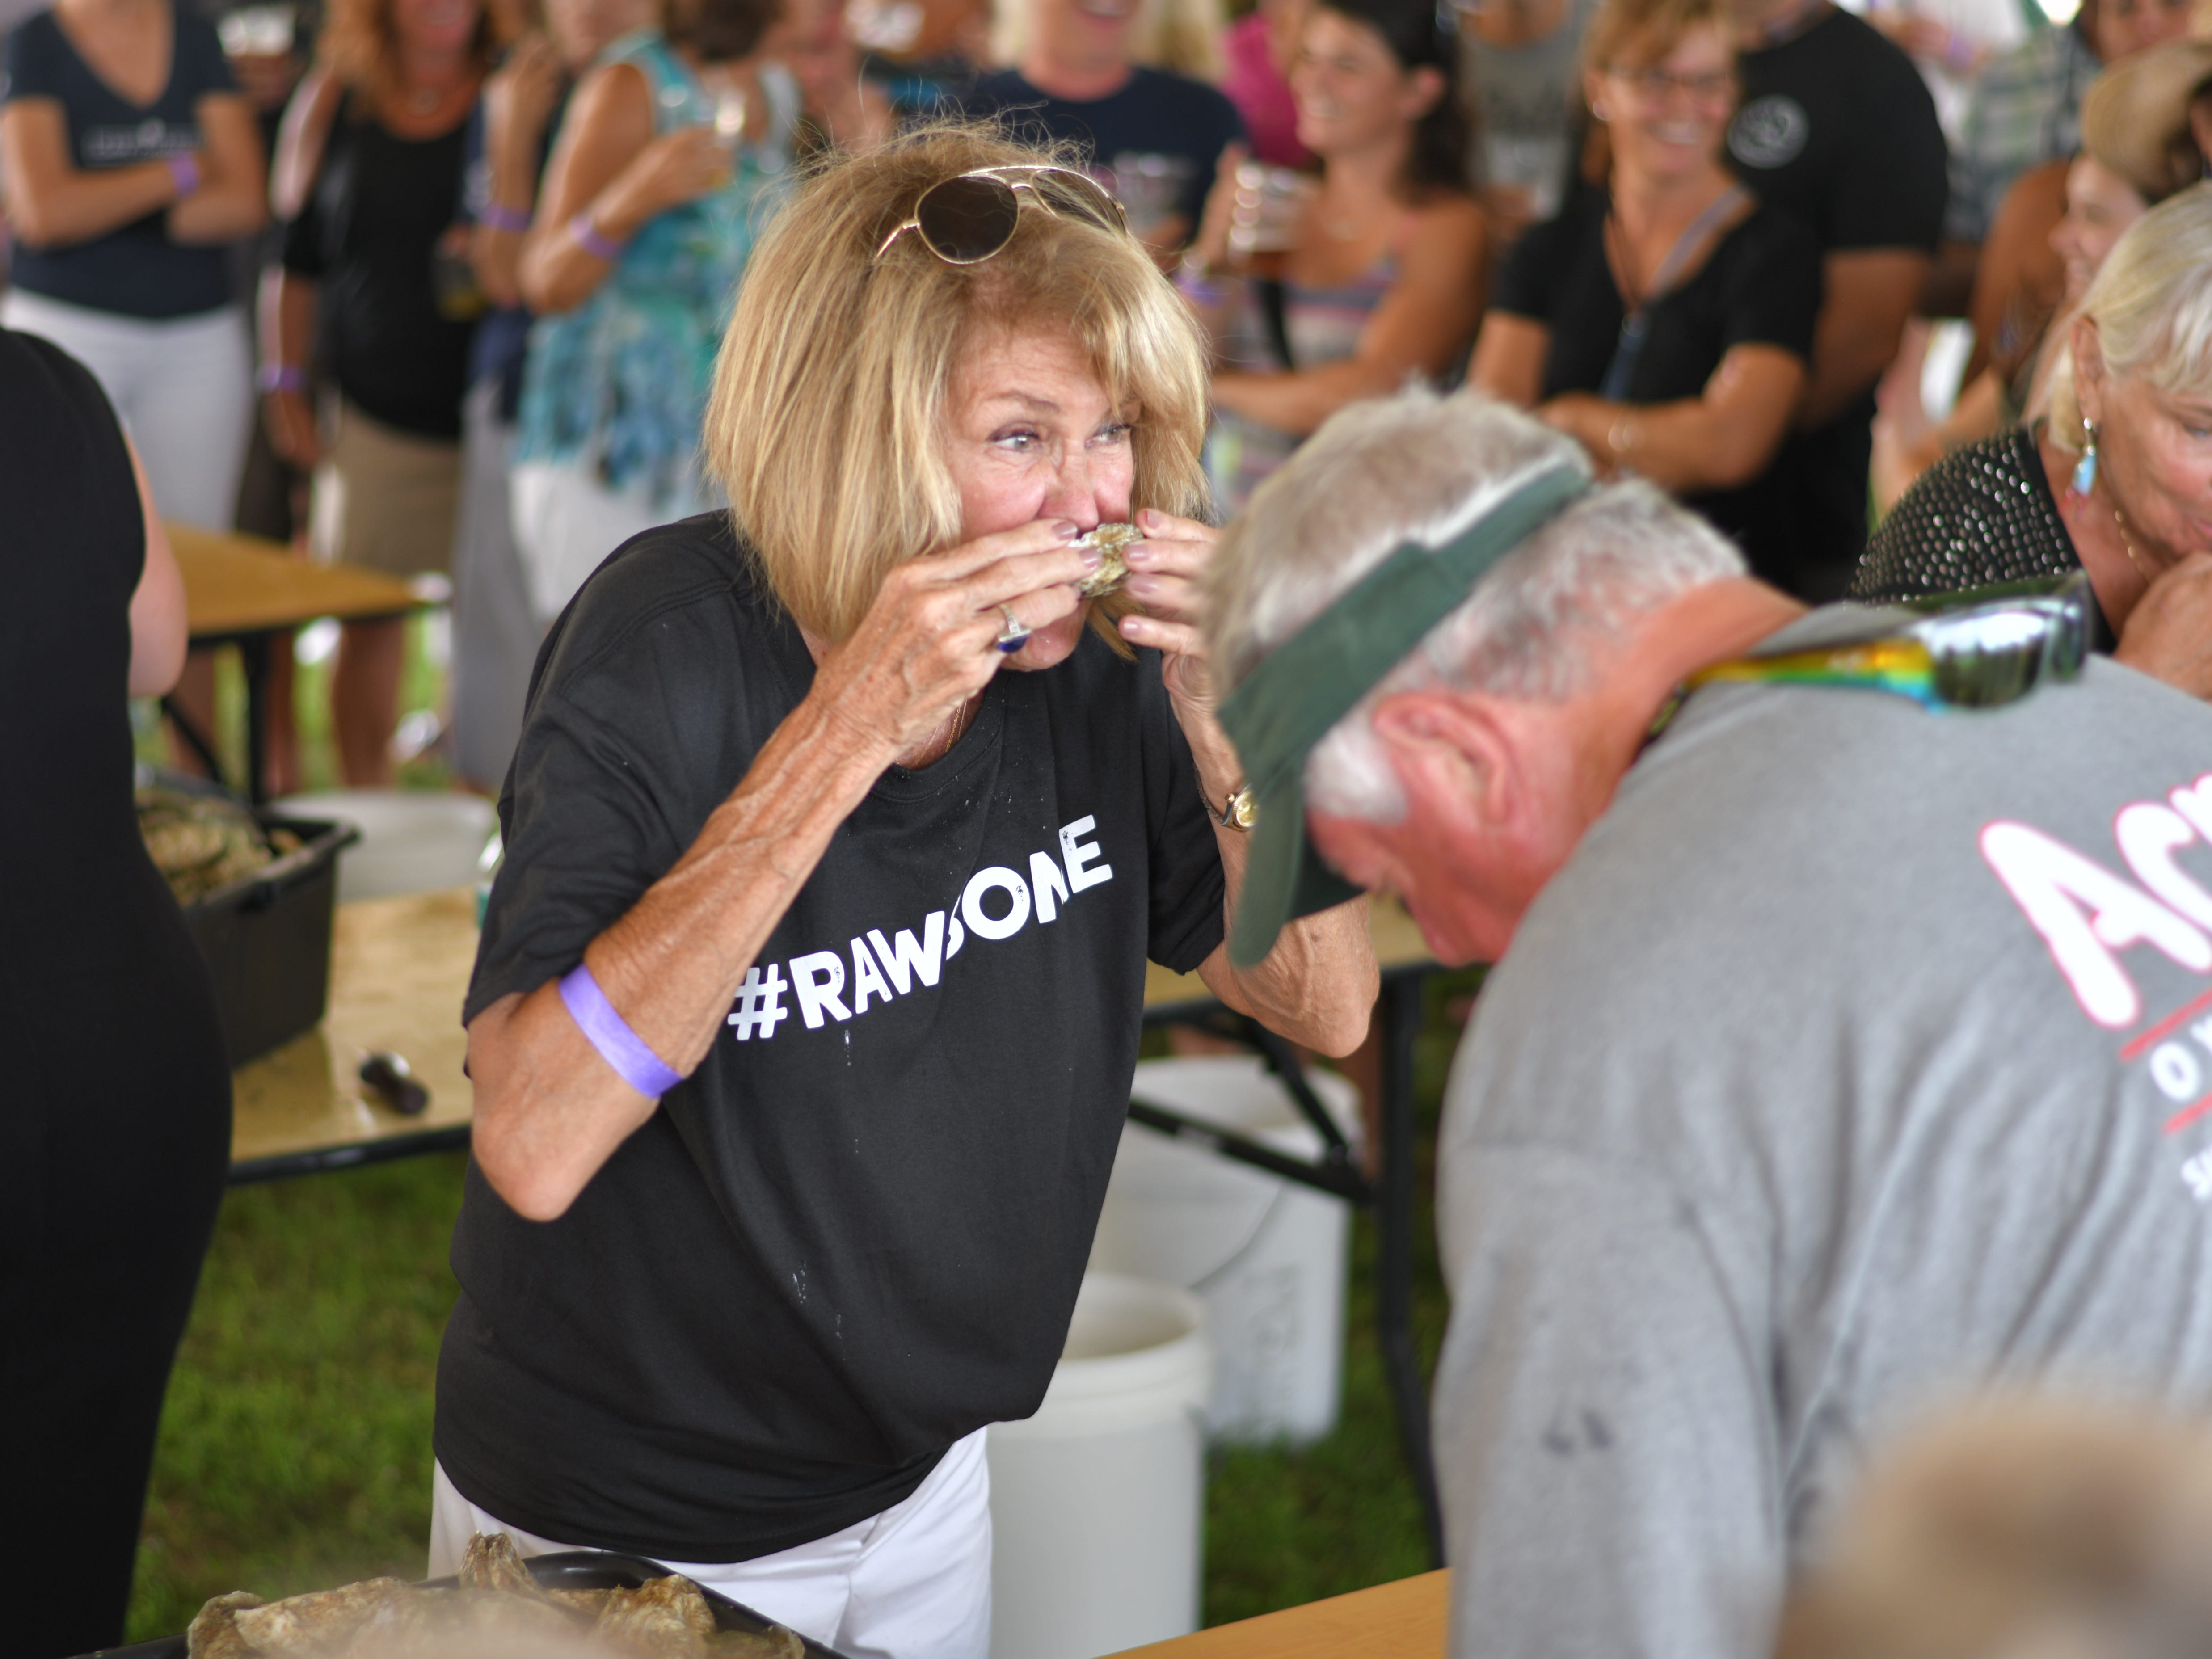 Mary Creekmore downs a raw oyster at the 3rd Annual Oyster Eating Contest.